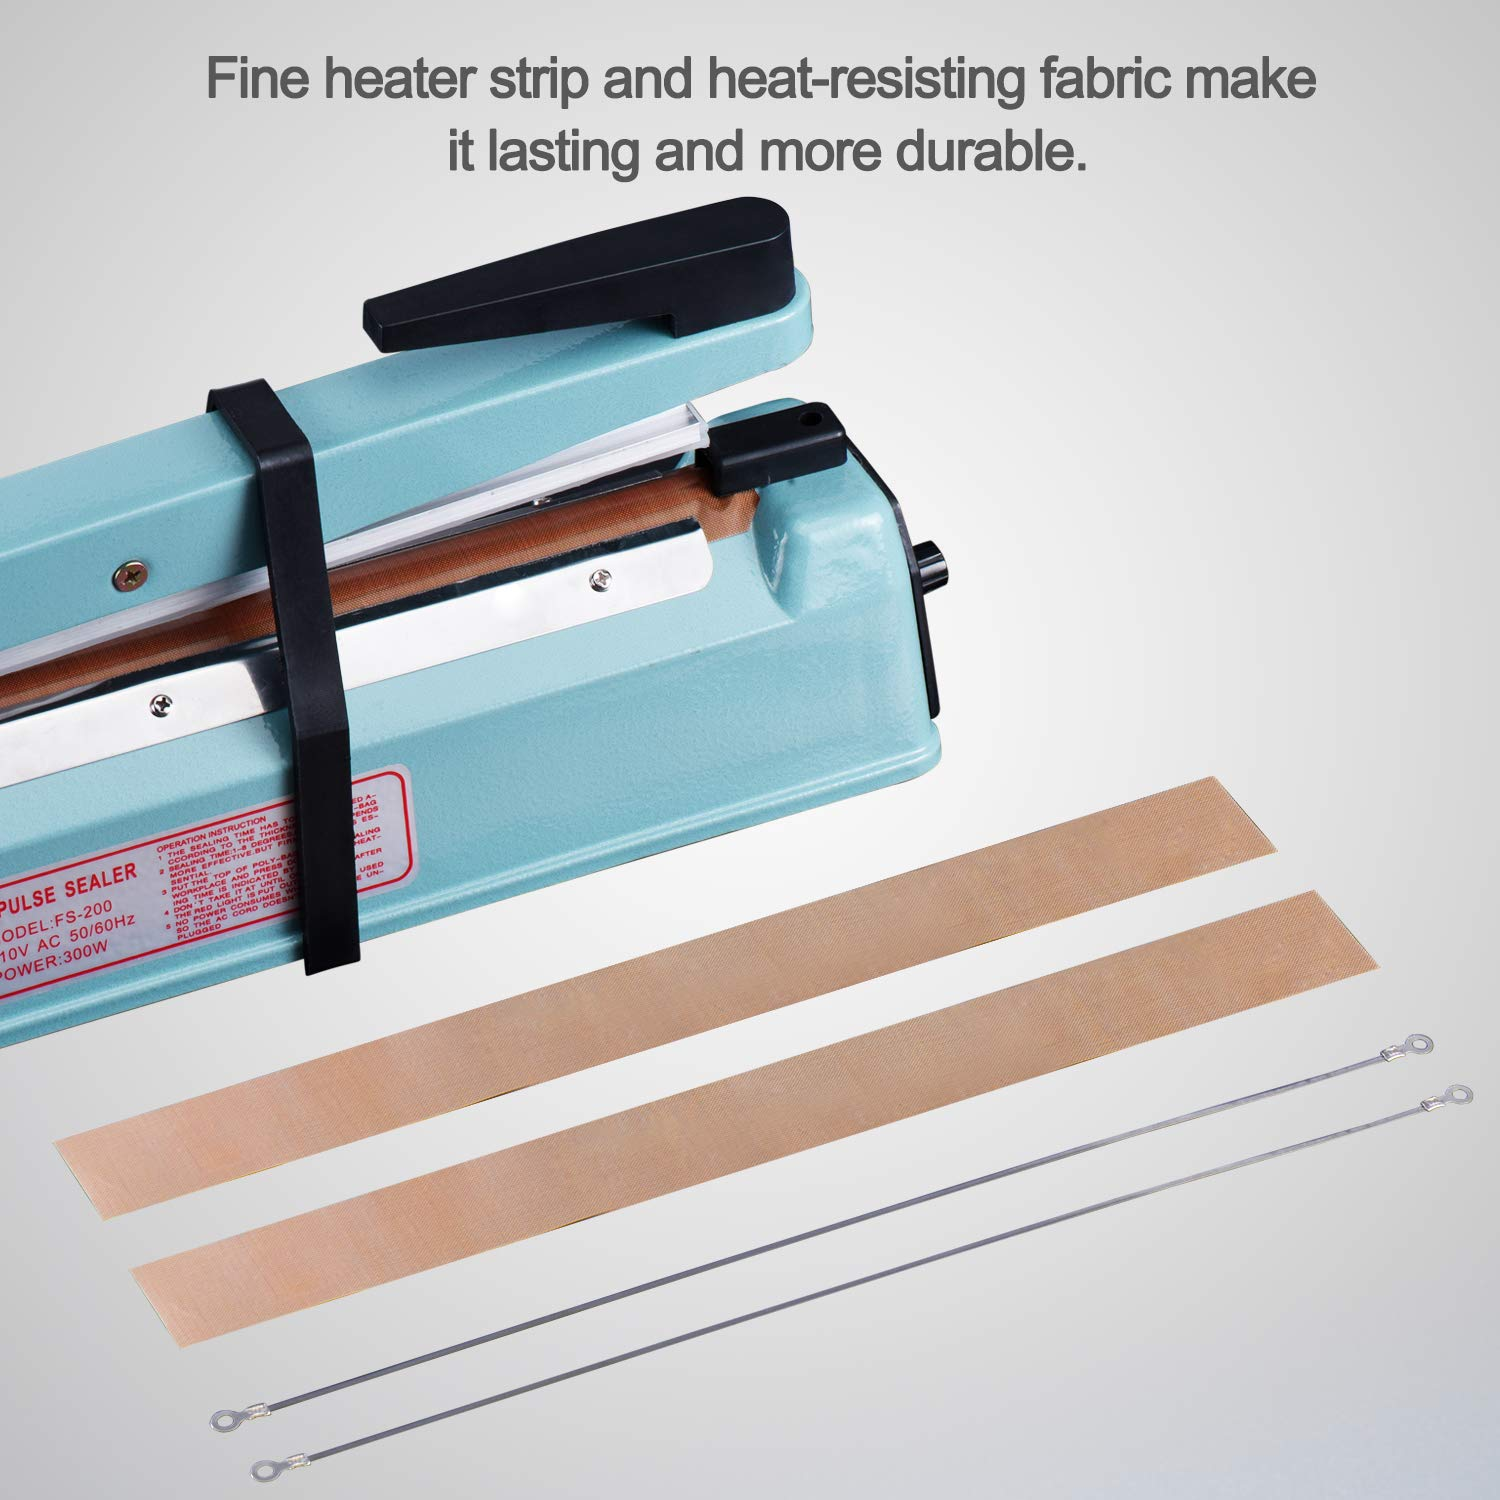 Fuxury 8 inch Impulse Heat Sealer Used Pure Copper Transformer,Manual Bag Sealer Heat Seal Closer + 2 Free Replacement KIT (Blue, 8'') by Fuxury (Image #4)